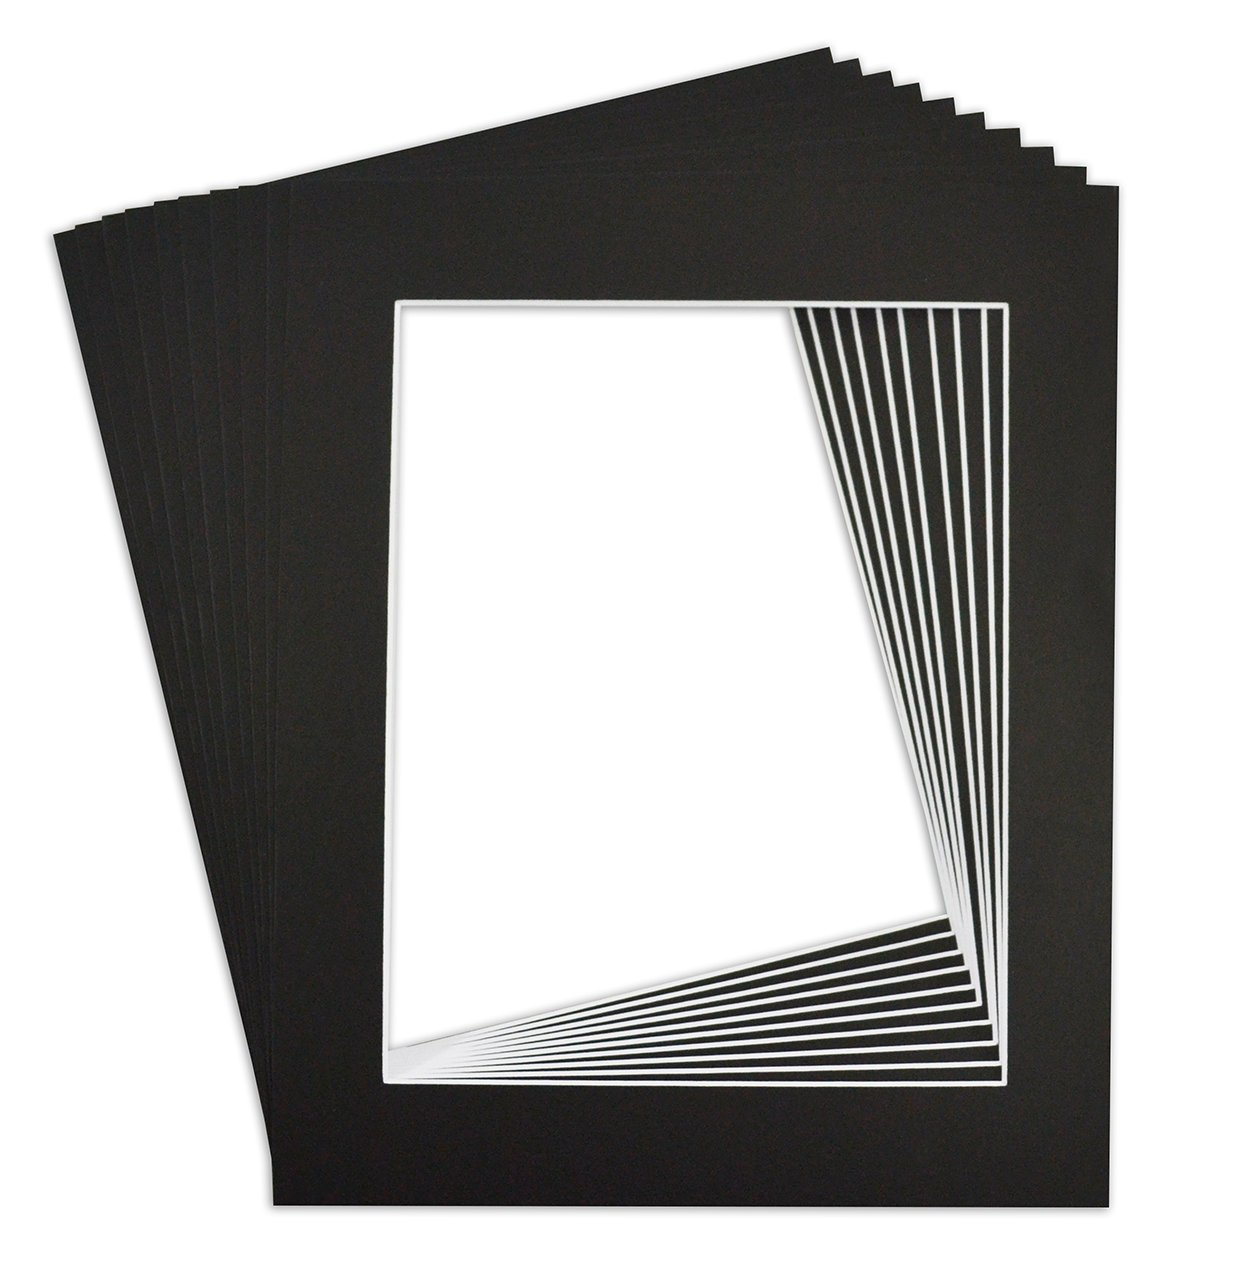 Golden State Art, Acid Free, Pack of 10 Black Pre-Cut 11x14 Picture Mat for 8.5x11 Photo with White Core High Premier Bevel Cut Mattes by Golden State Art